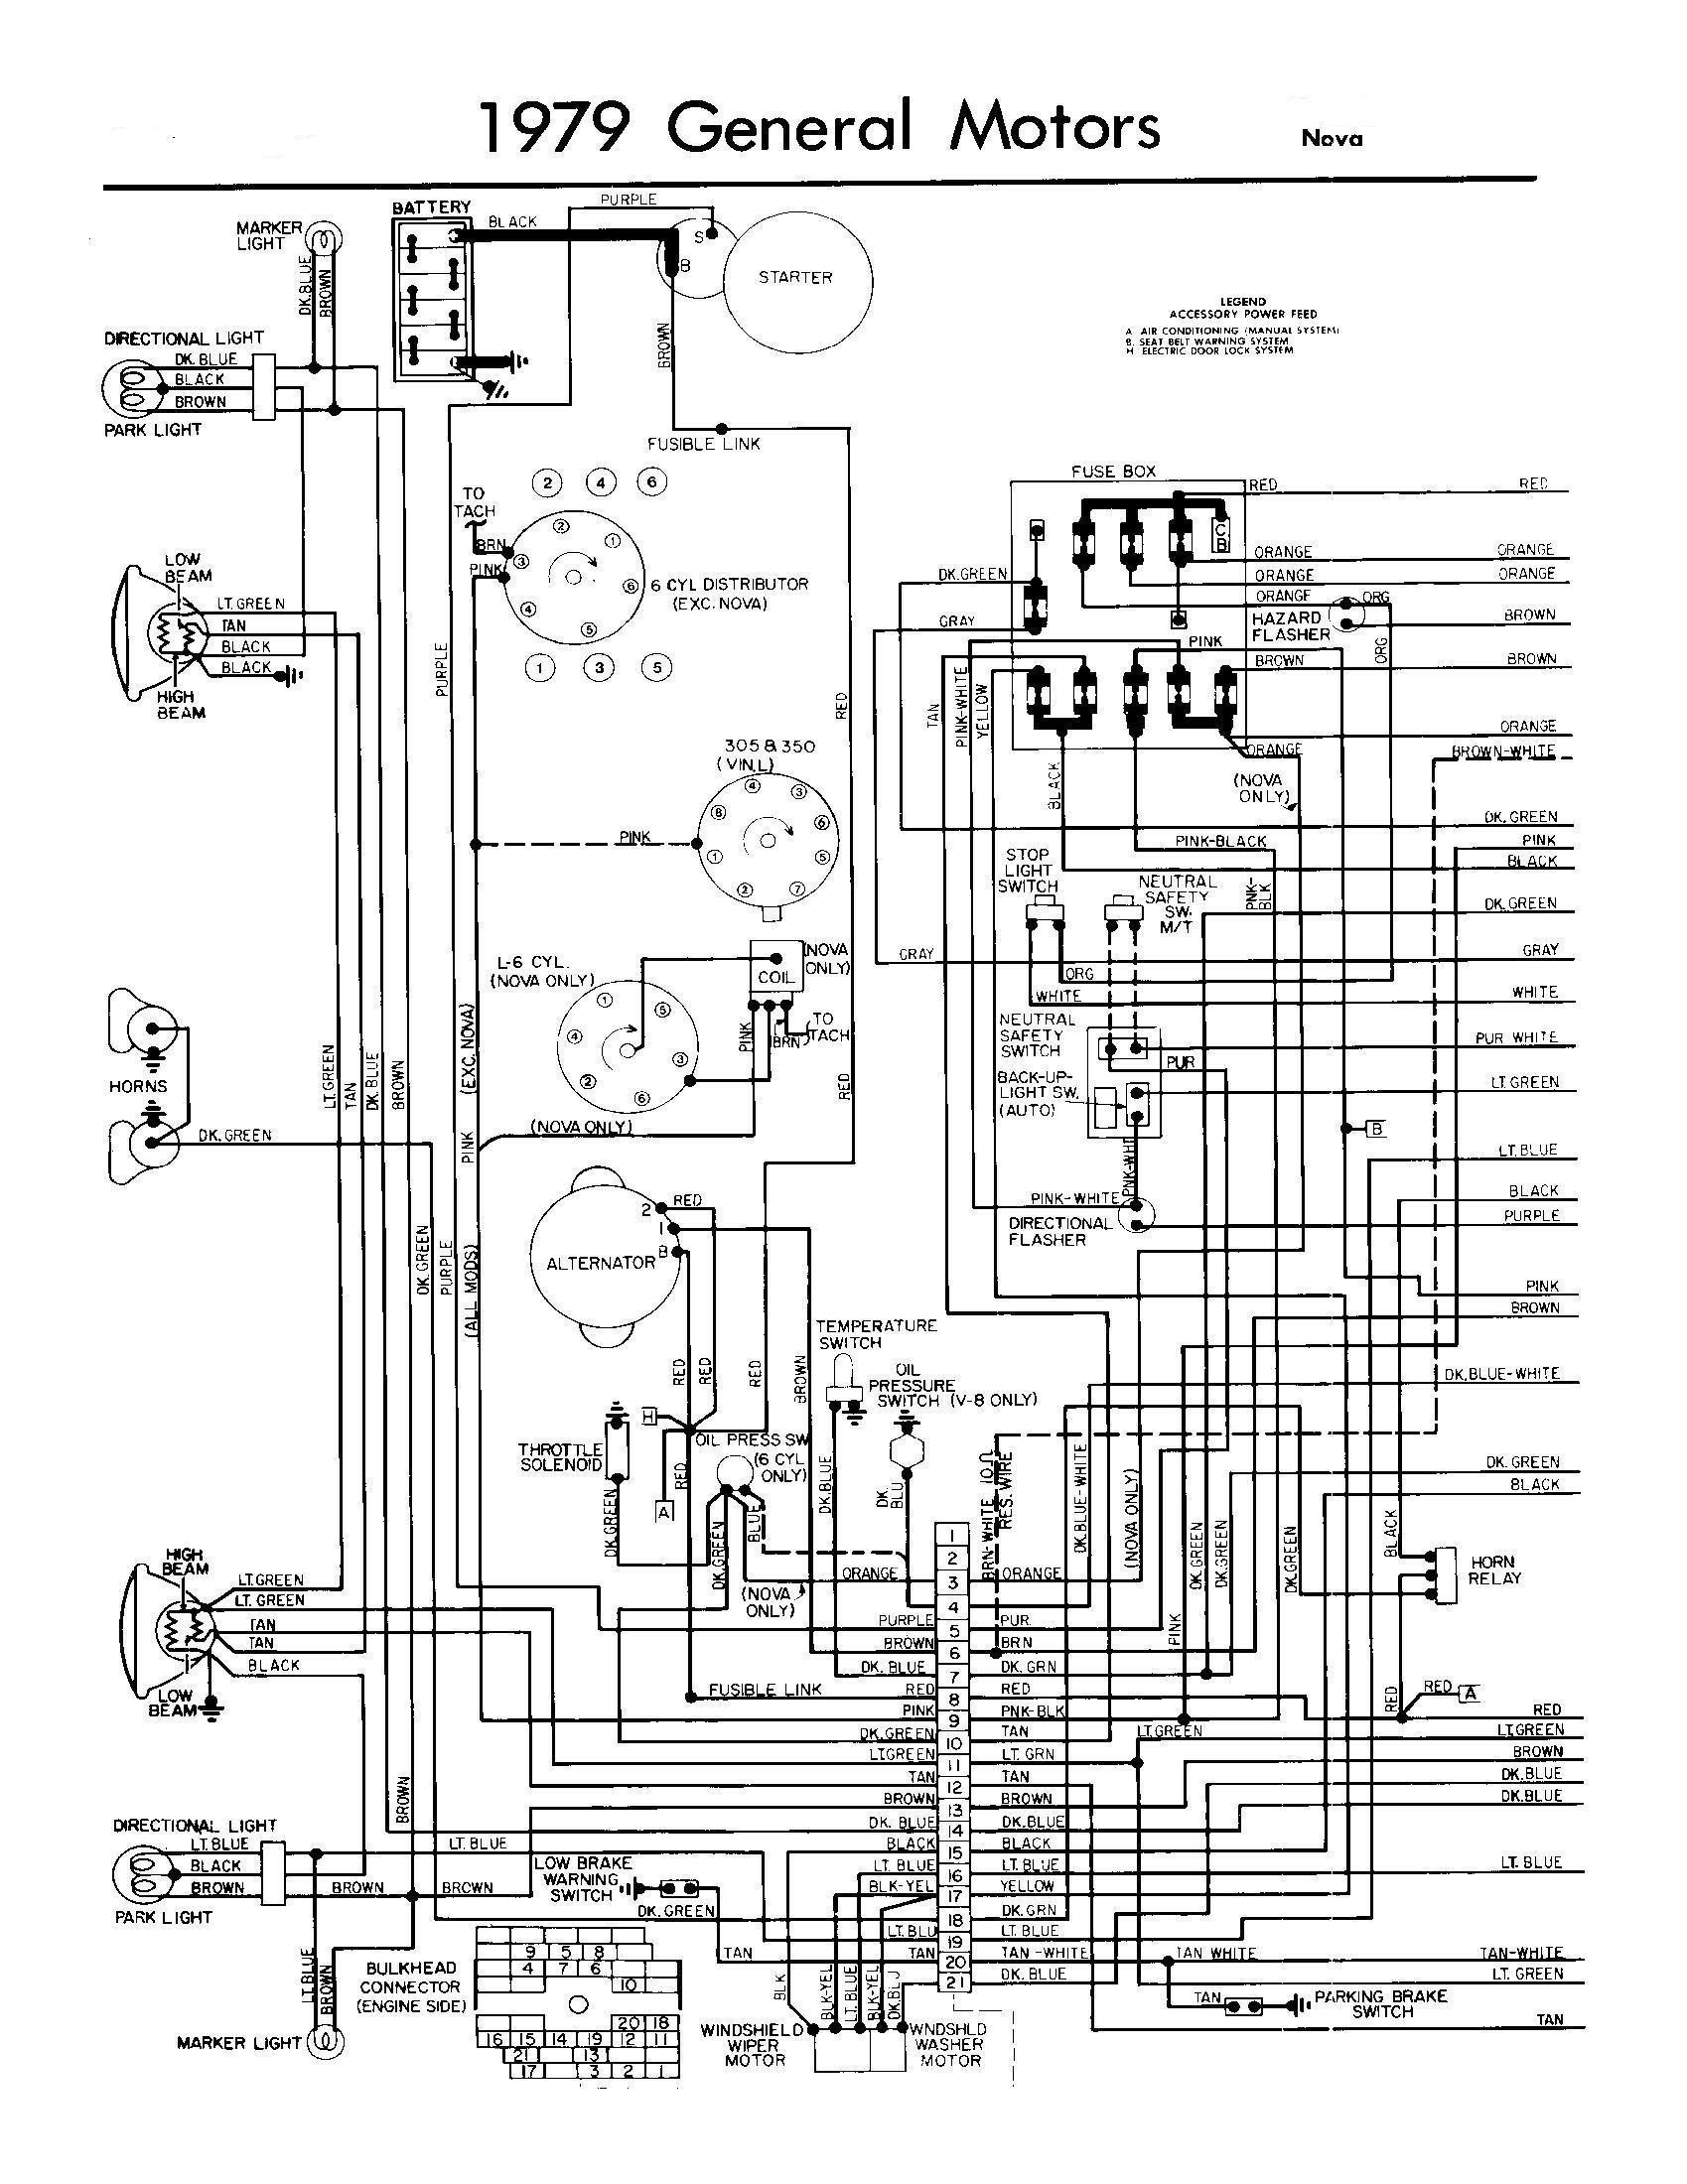 9n ford Tractor Wiring Diagram 1066 International Tractor Wiring Diagram Mastering Wiring Diagram • Of 9n ford Tractor Wiring Diagram